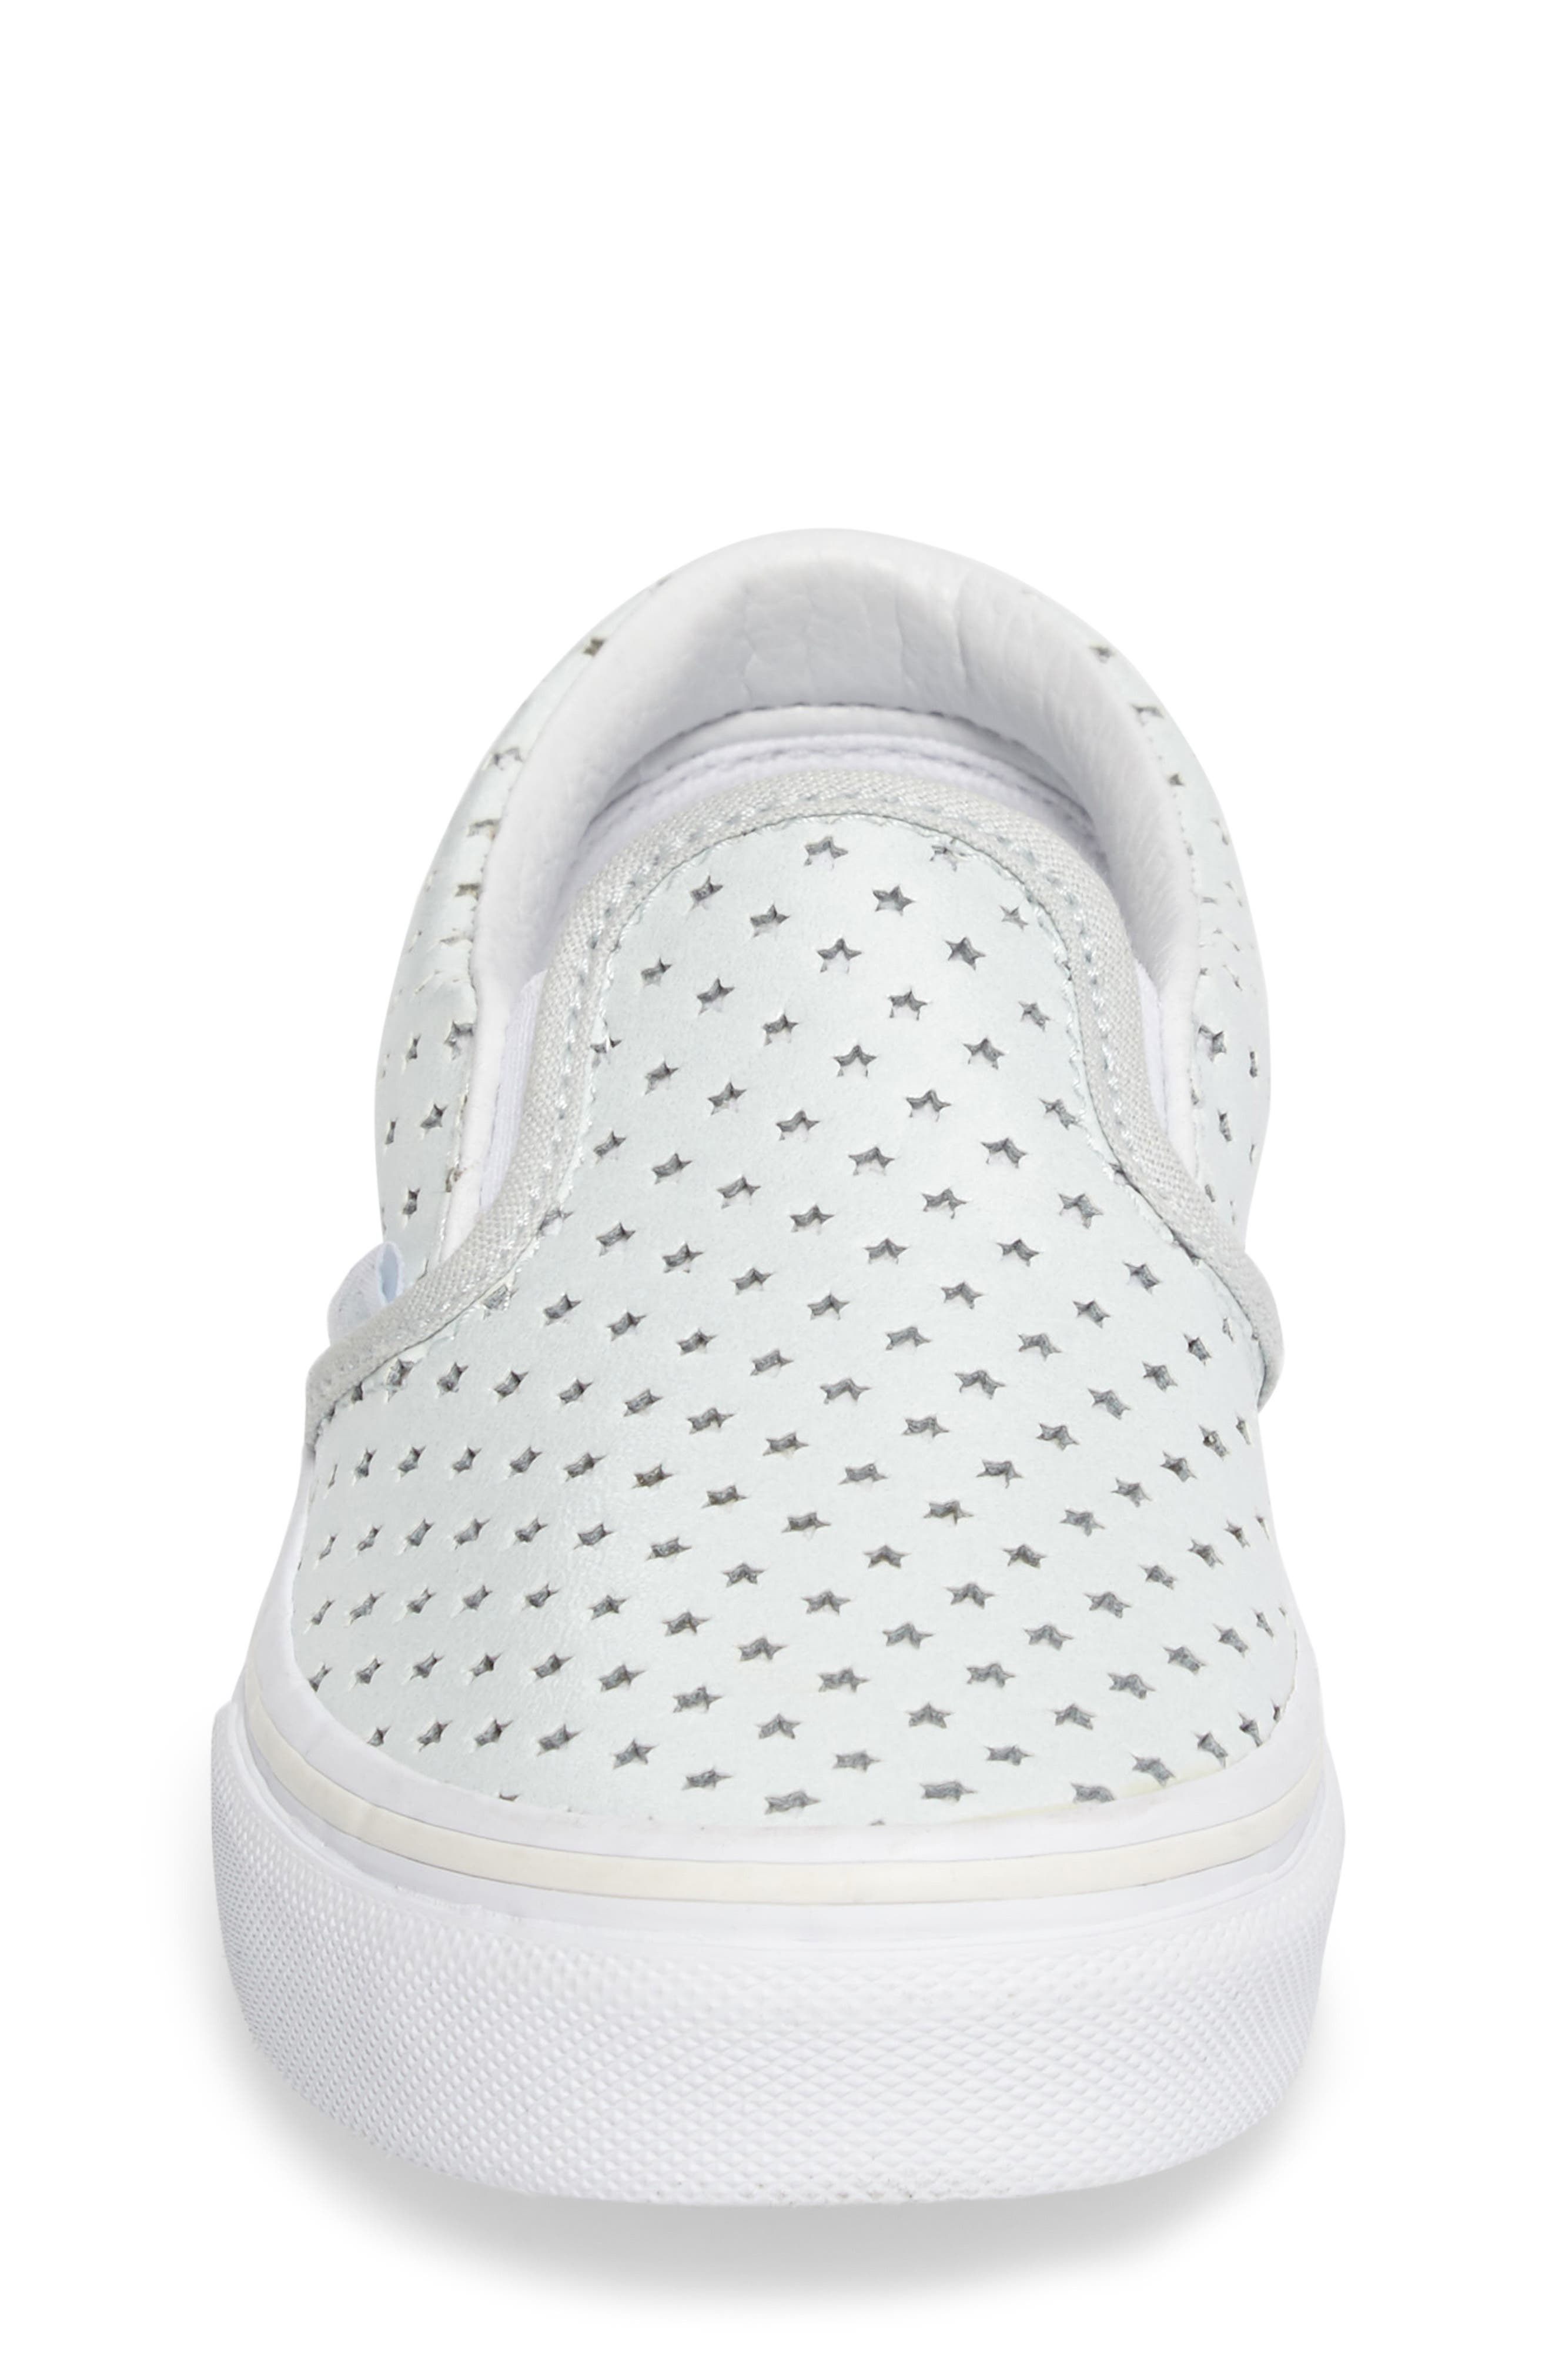 Classic Perforated Slip-On Sneaker,                             Alternate thumbnail 5, color,                             Stars Pearlized Leather